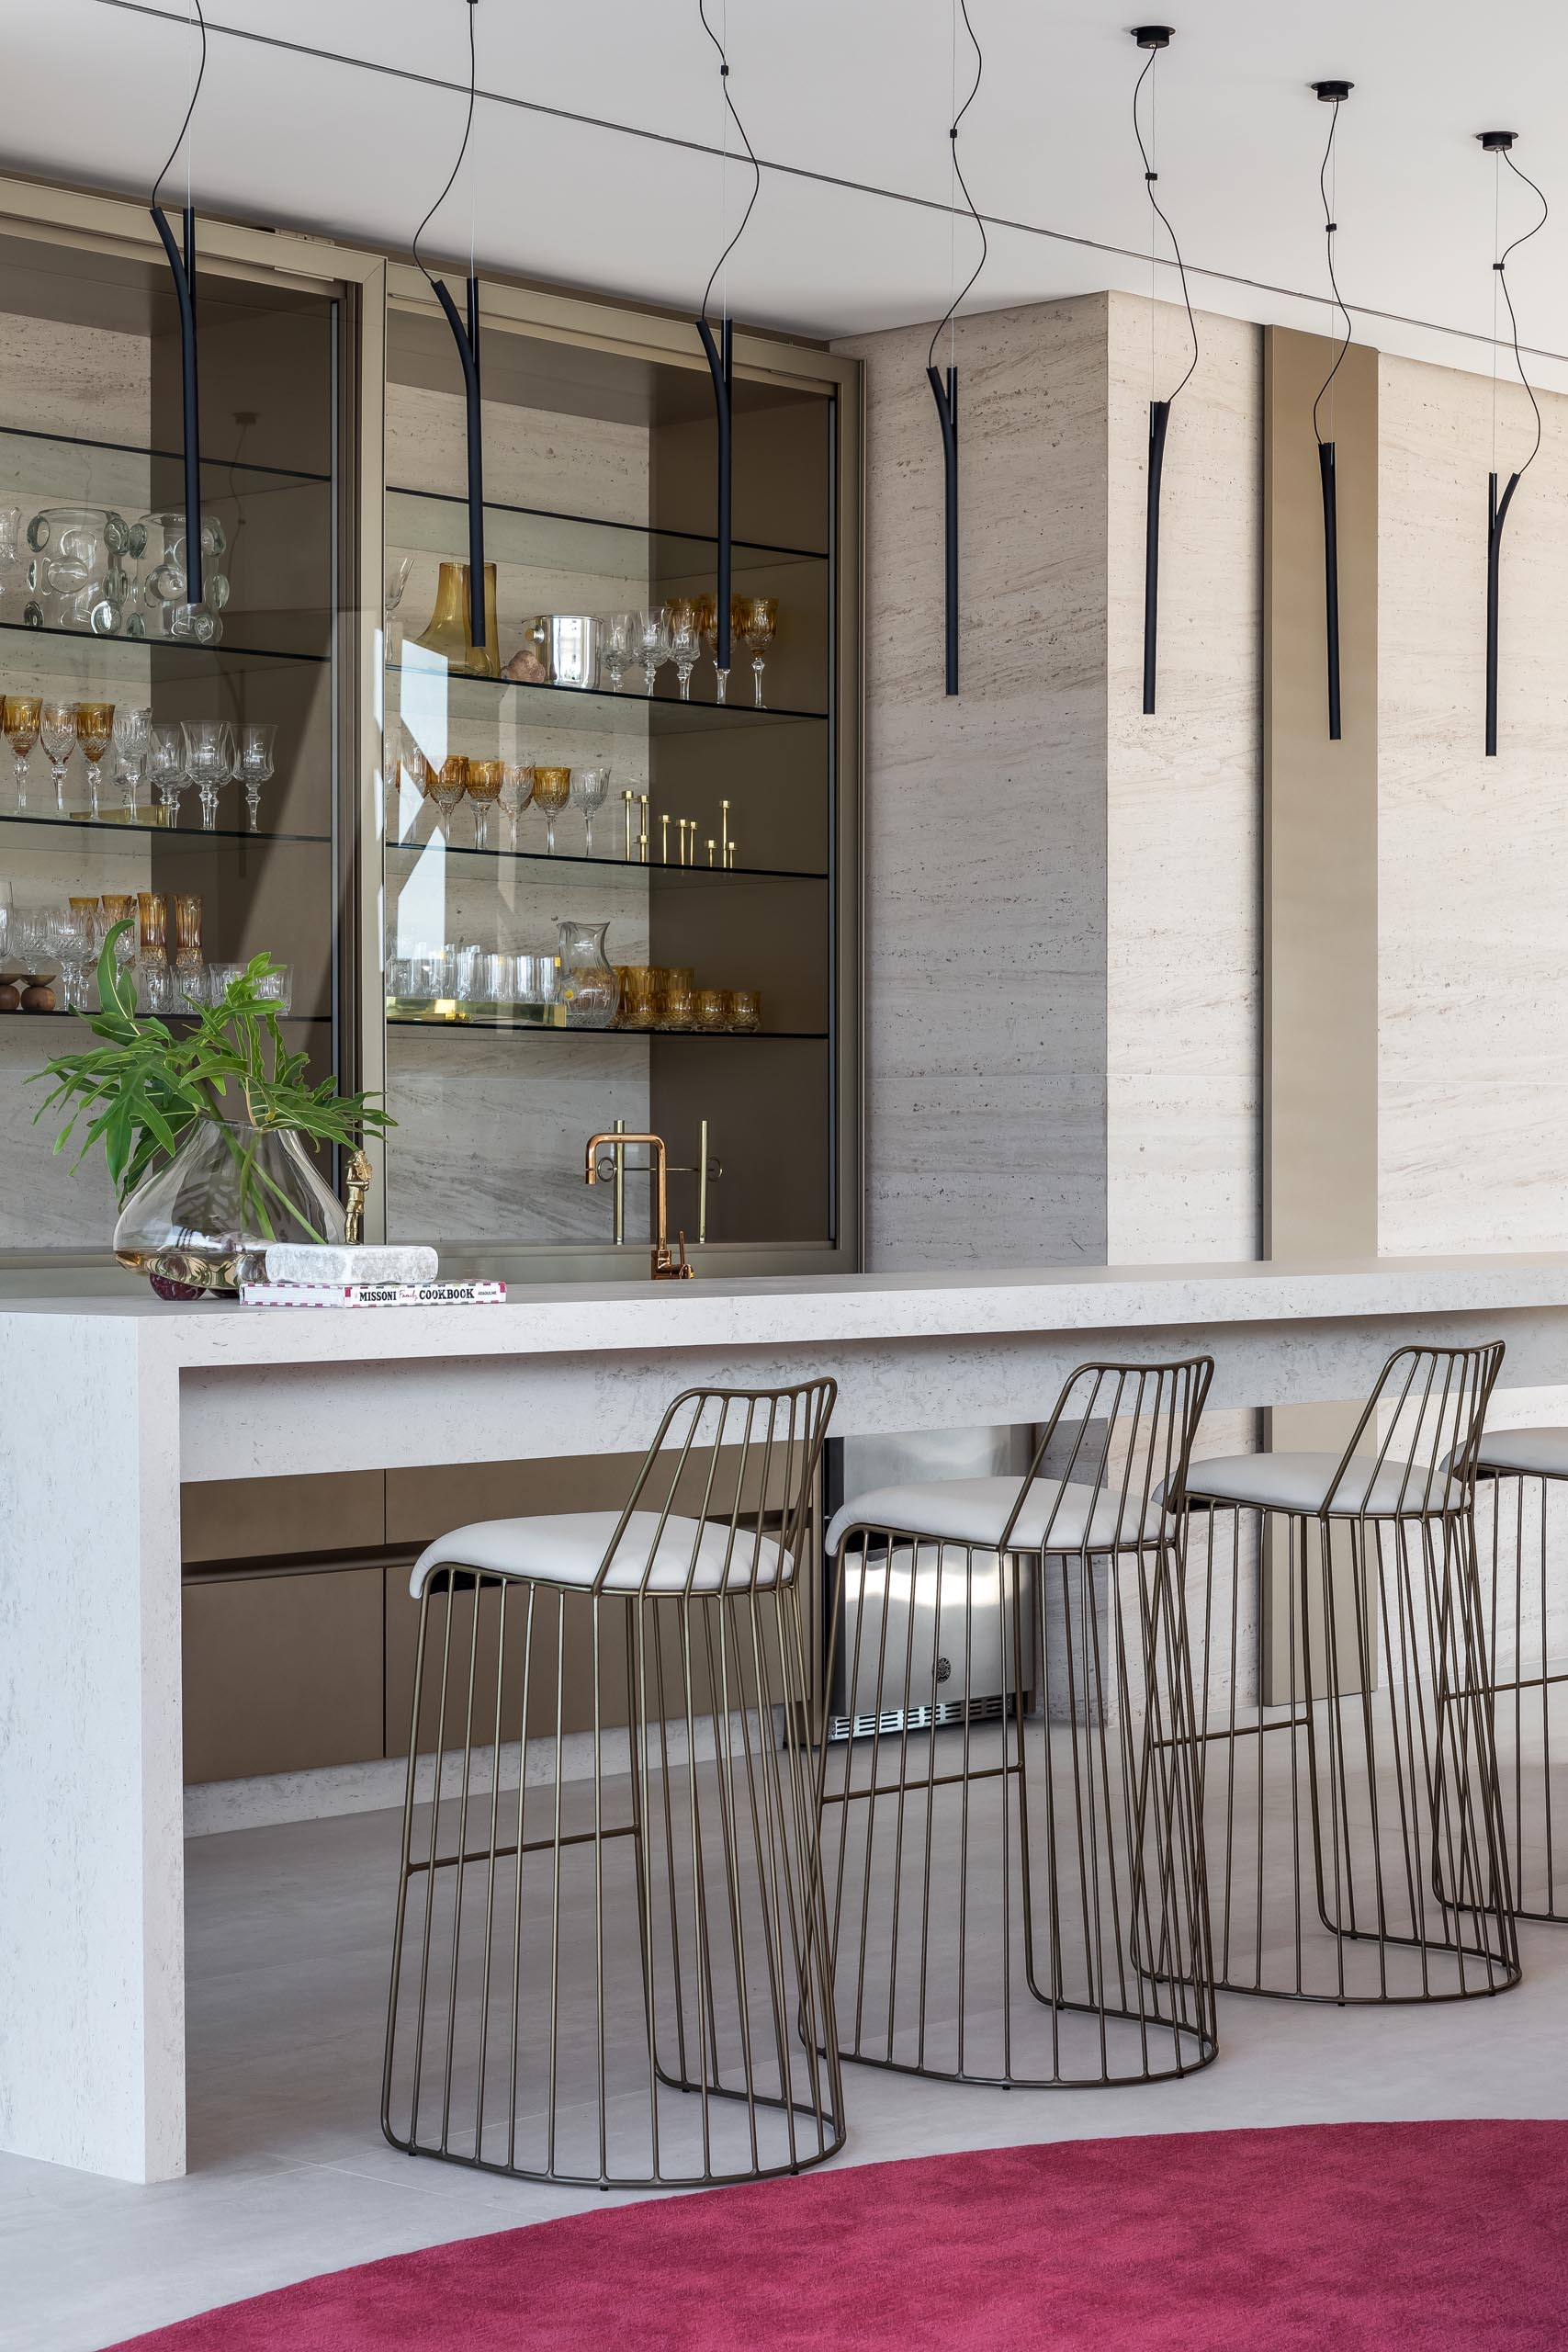 This modern home bar has a long narrow island and glass shelving.